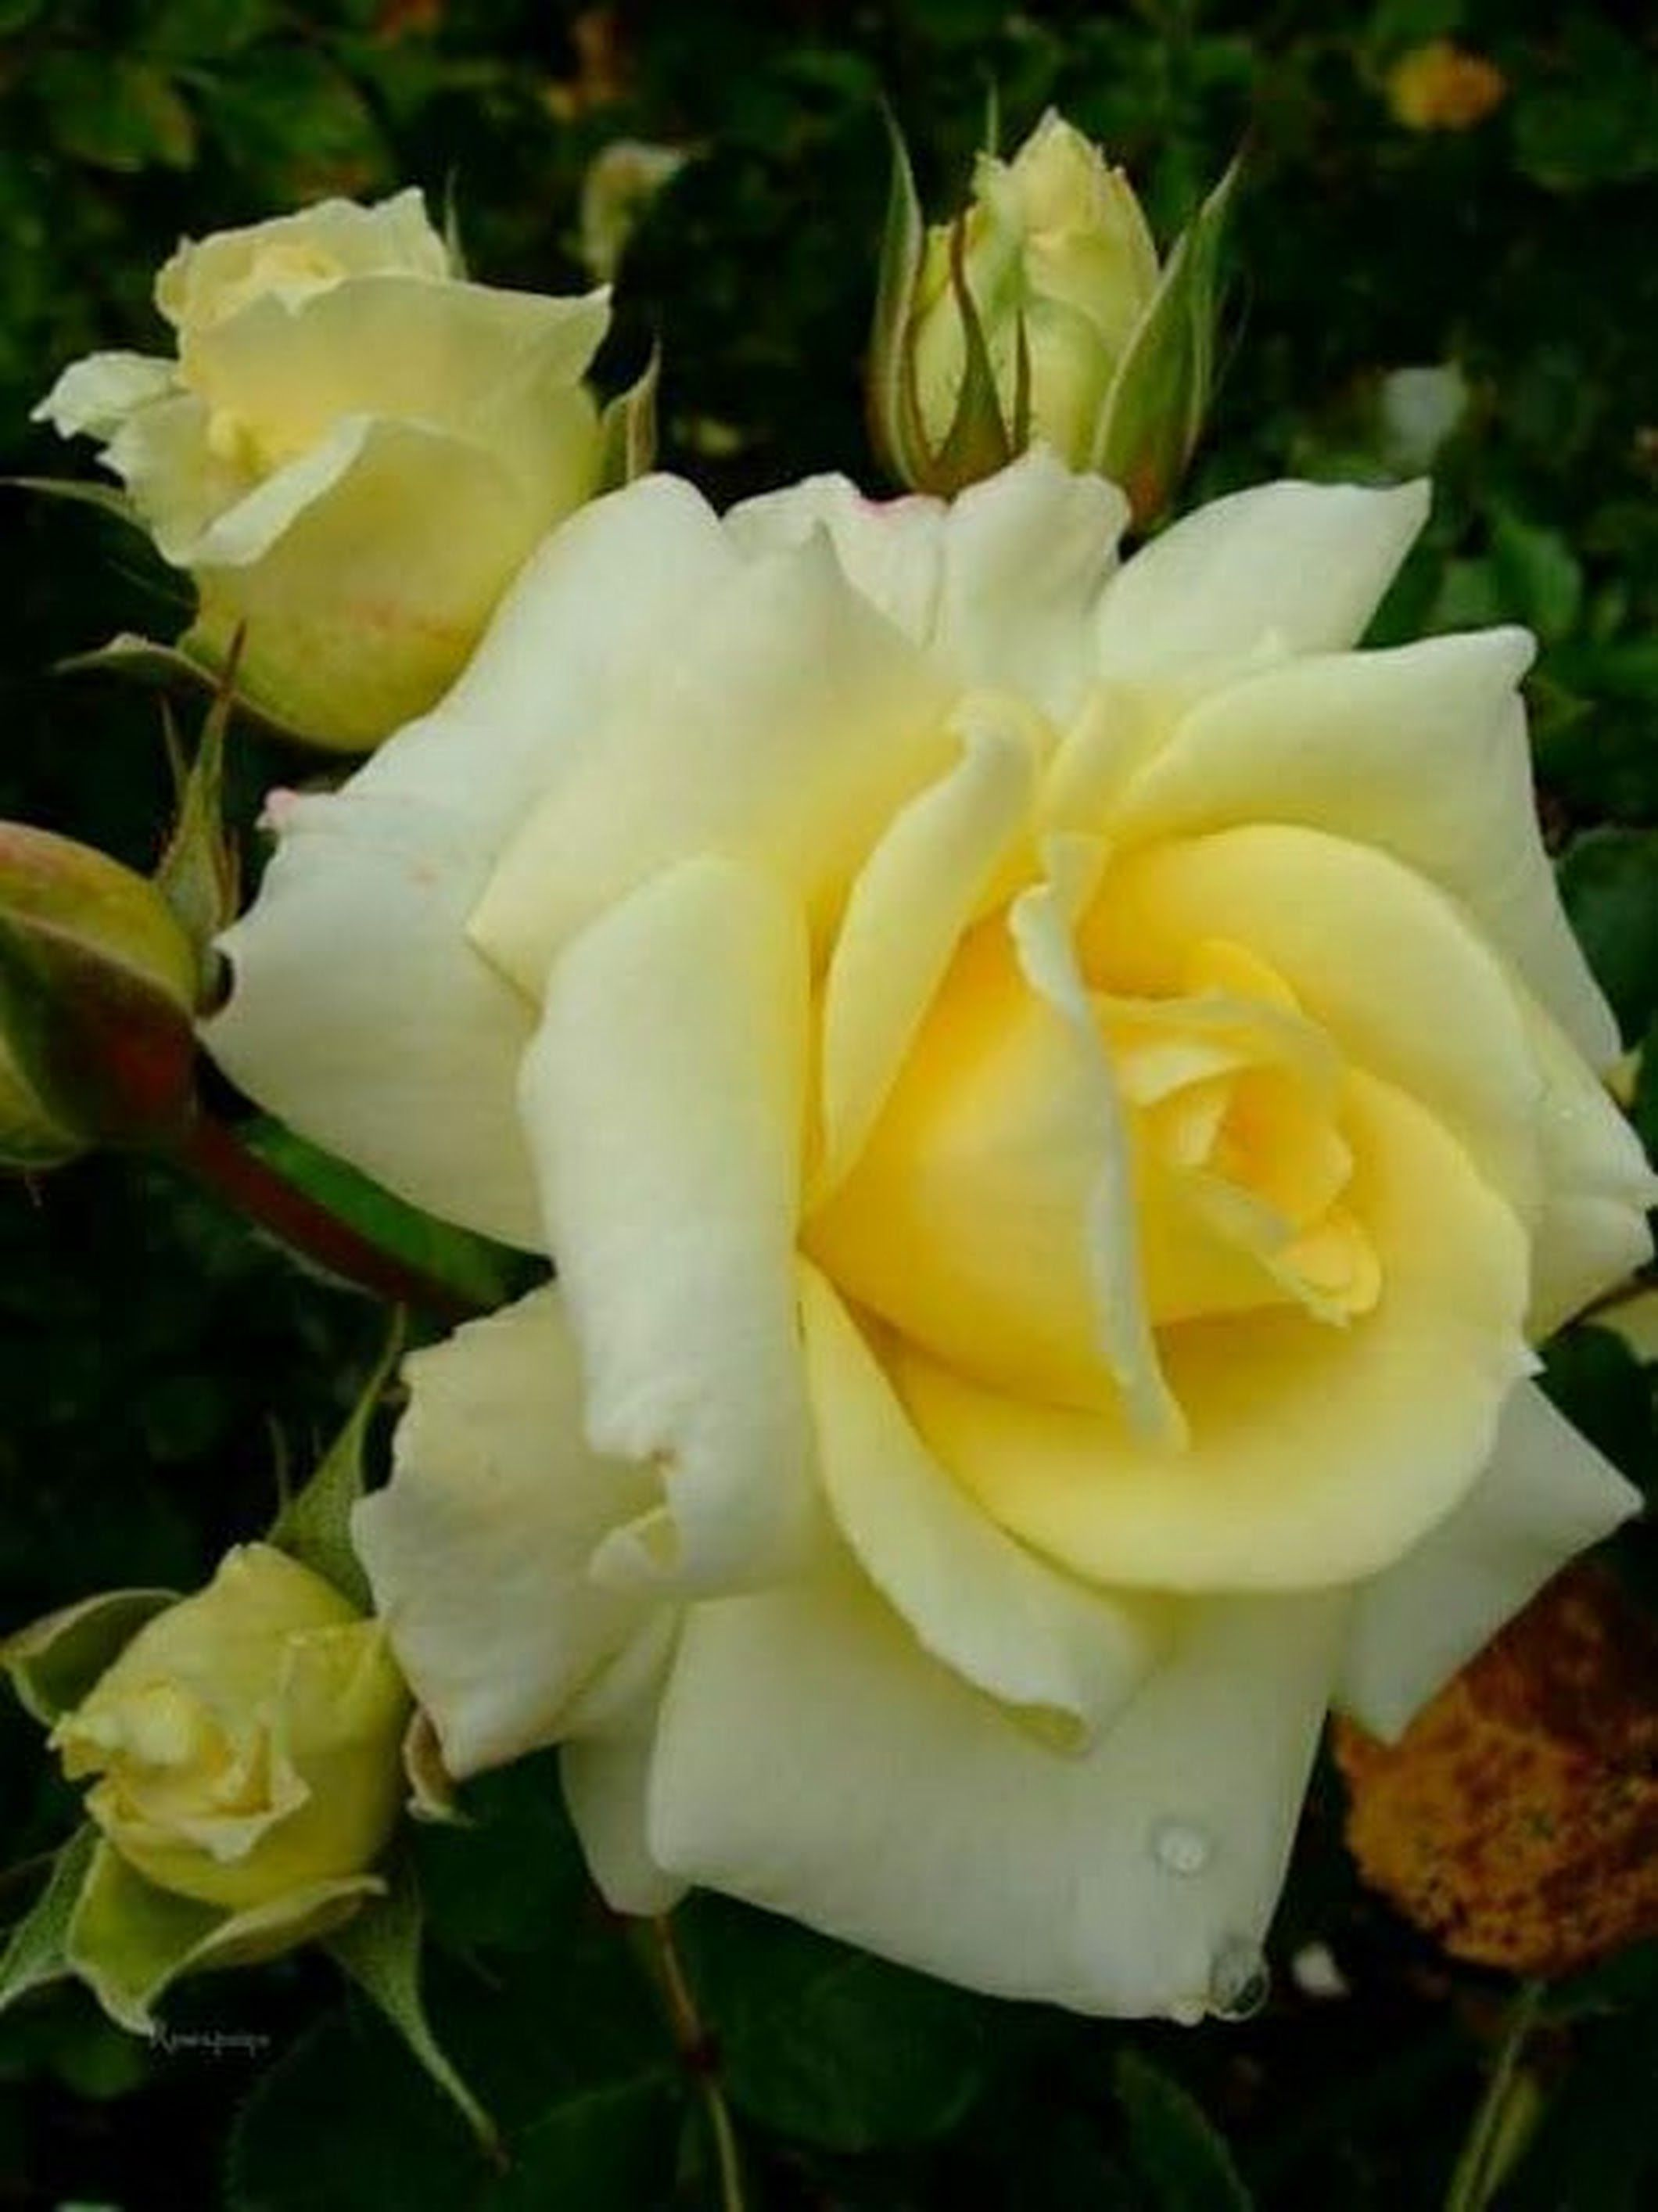 Pin By Janet Jacob On Roses Pinterest Flowers Rose And